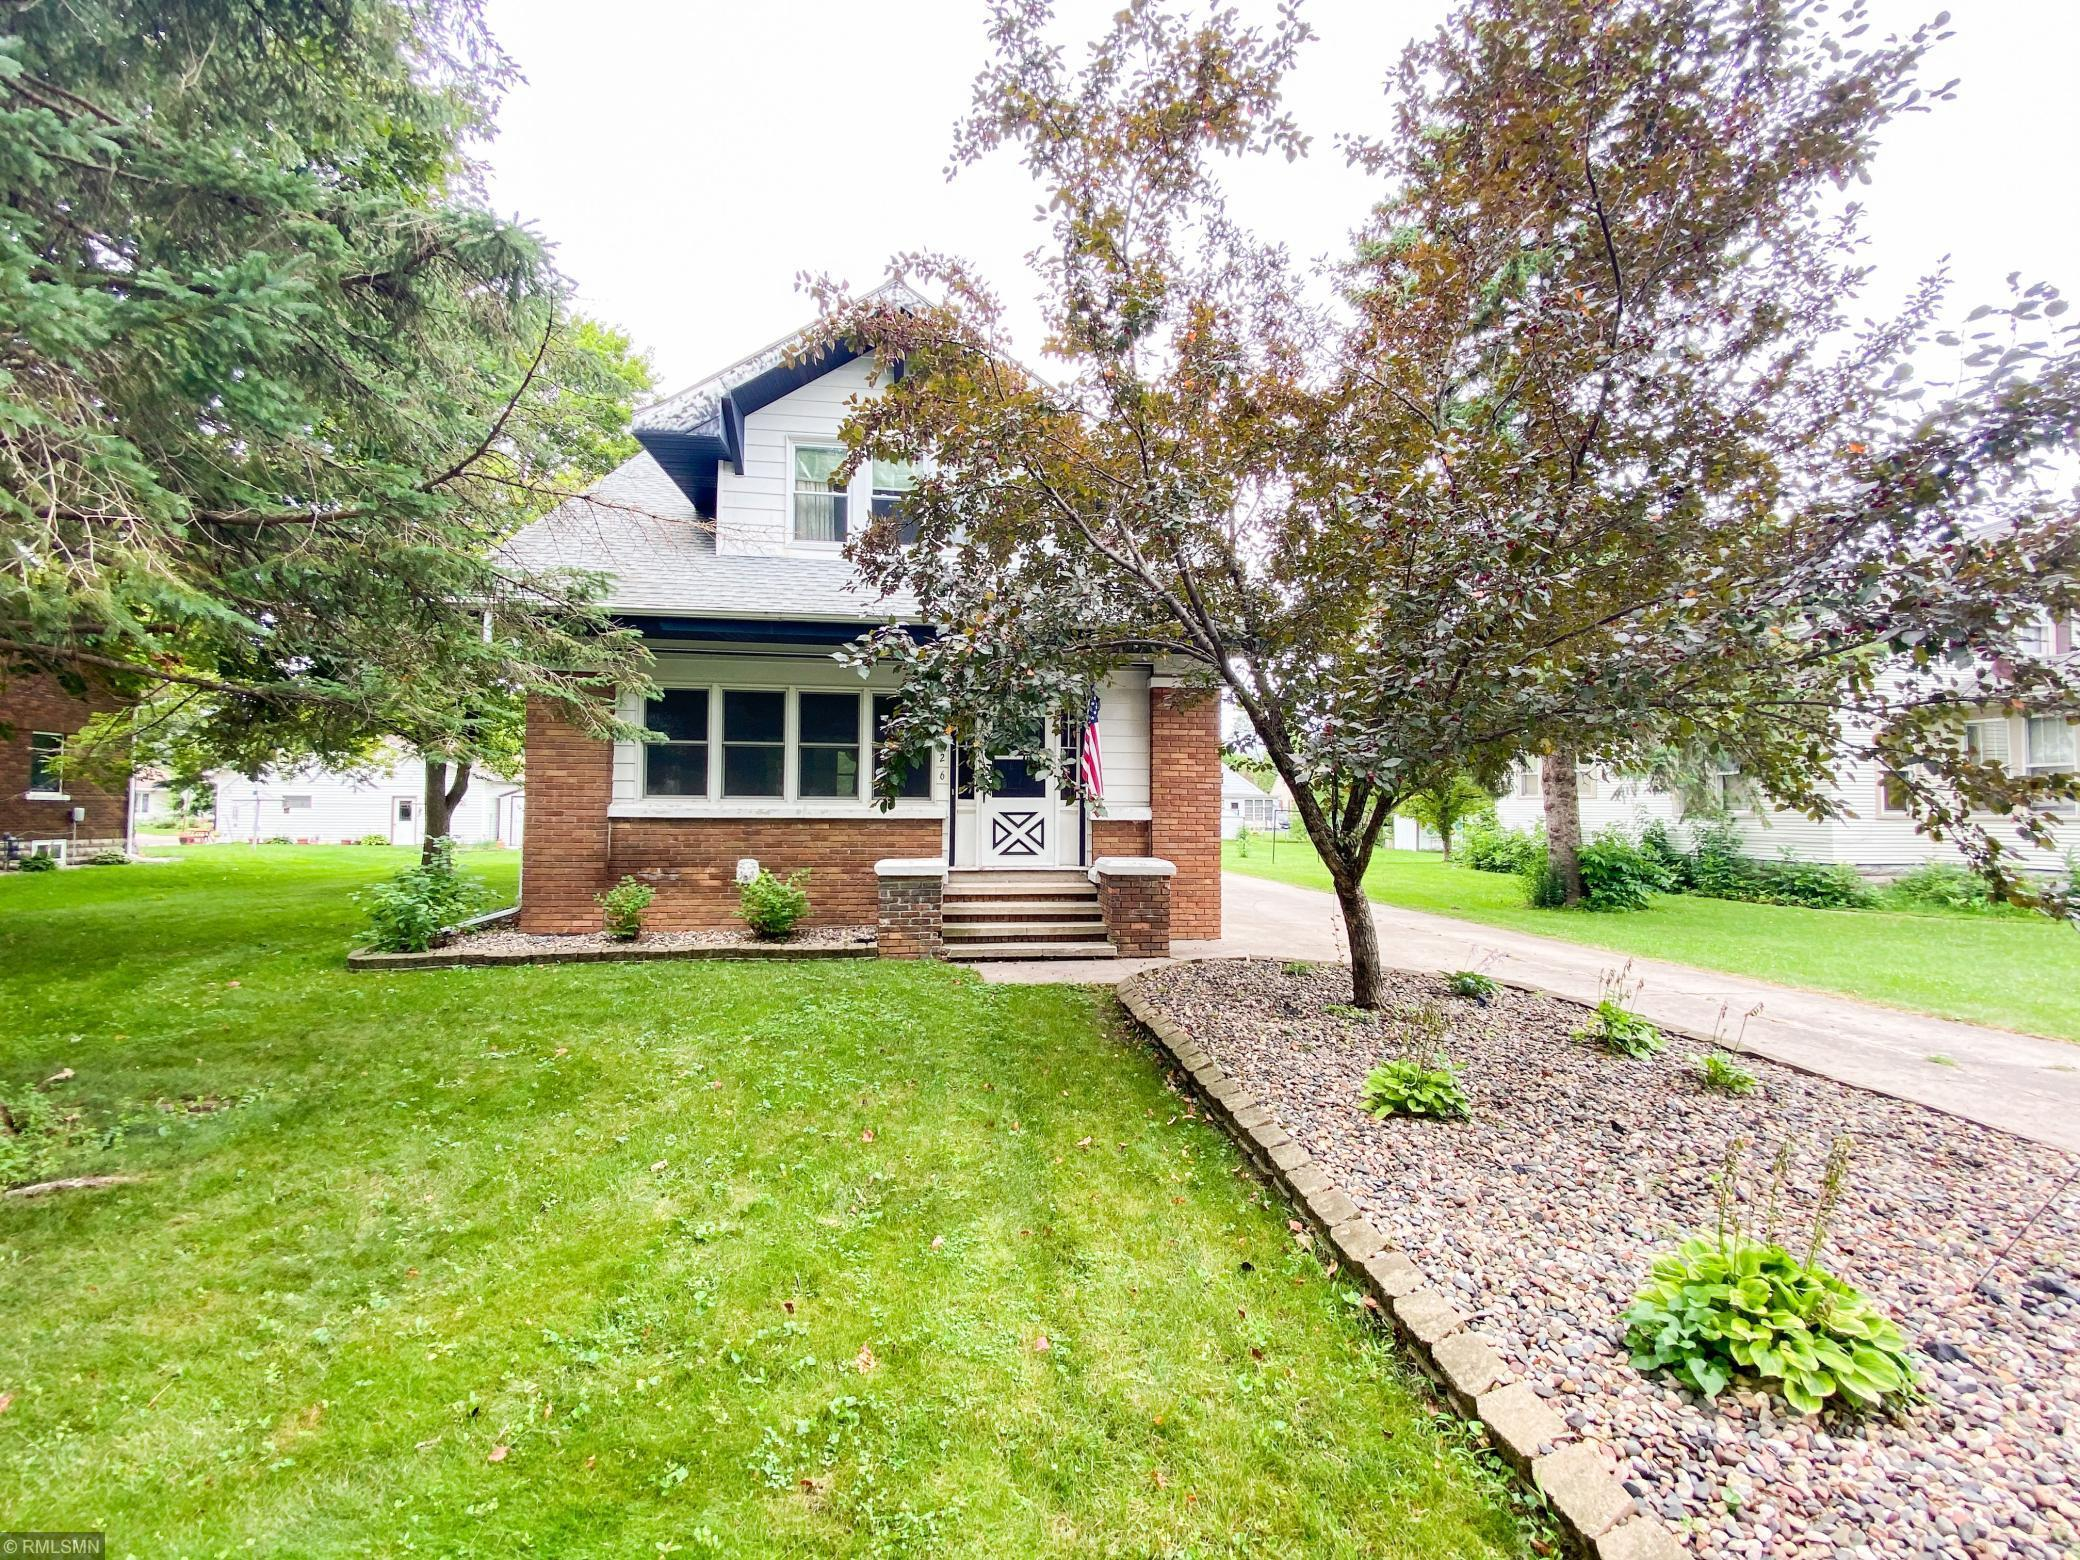 726 Bradley Avenue Property Photo - Gibbon, MN real estate listing